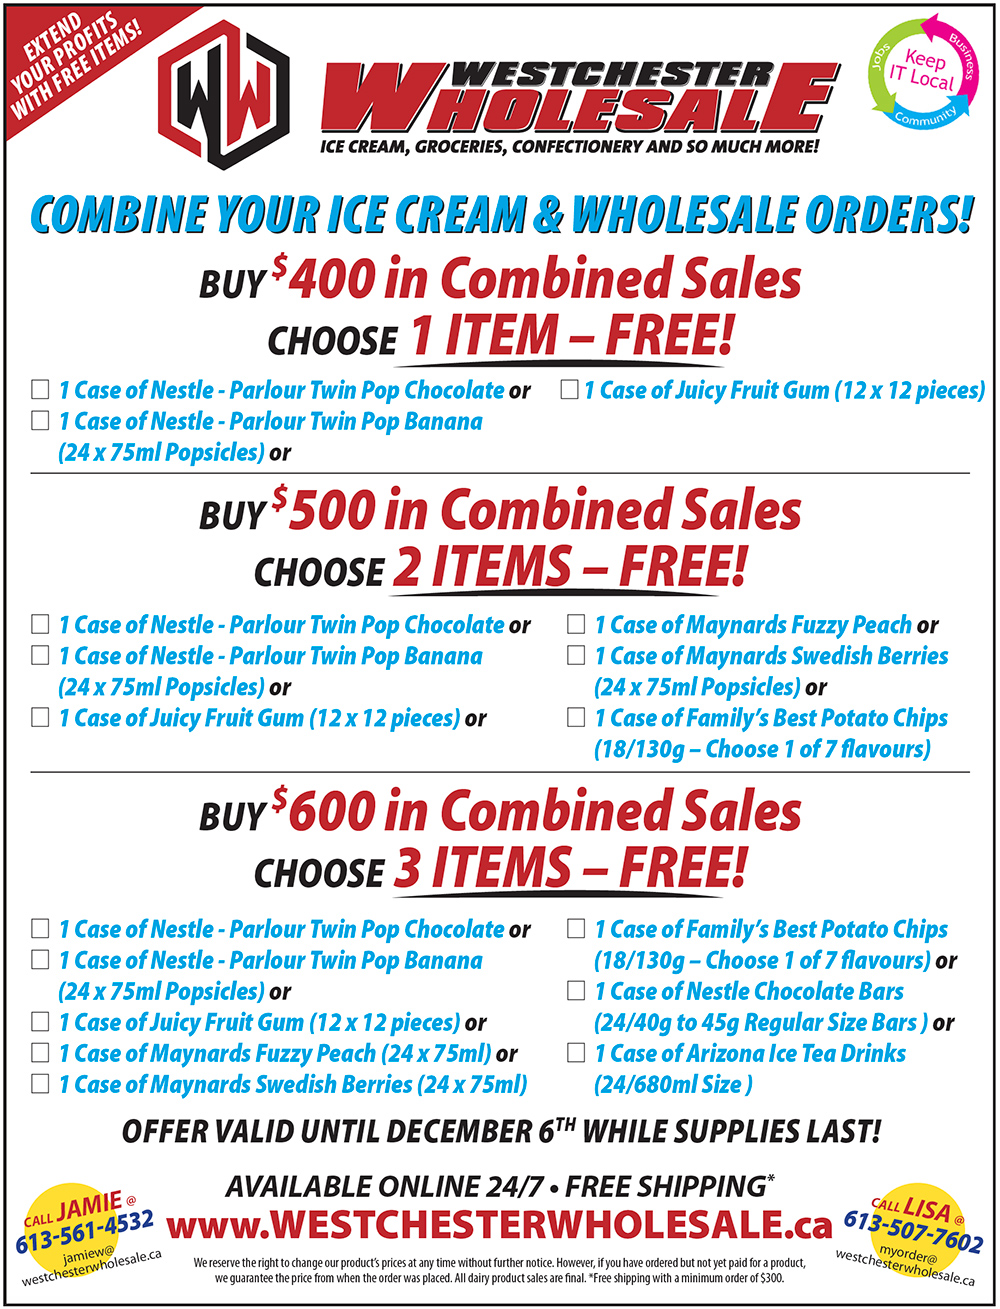 Combine Your Ice Cream & Wholesale Orders - Choose FREE Items!